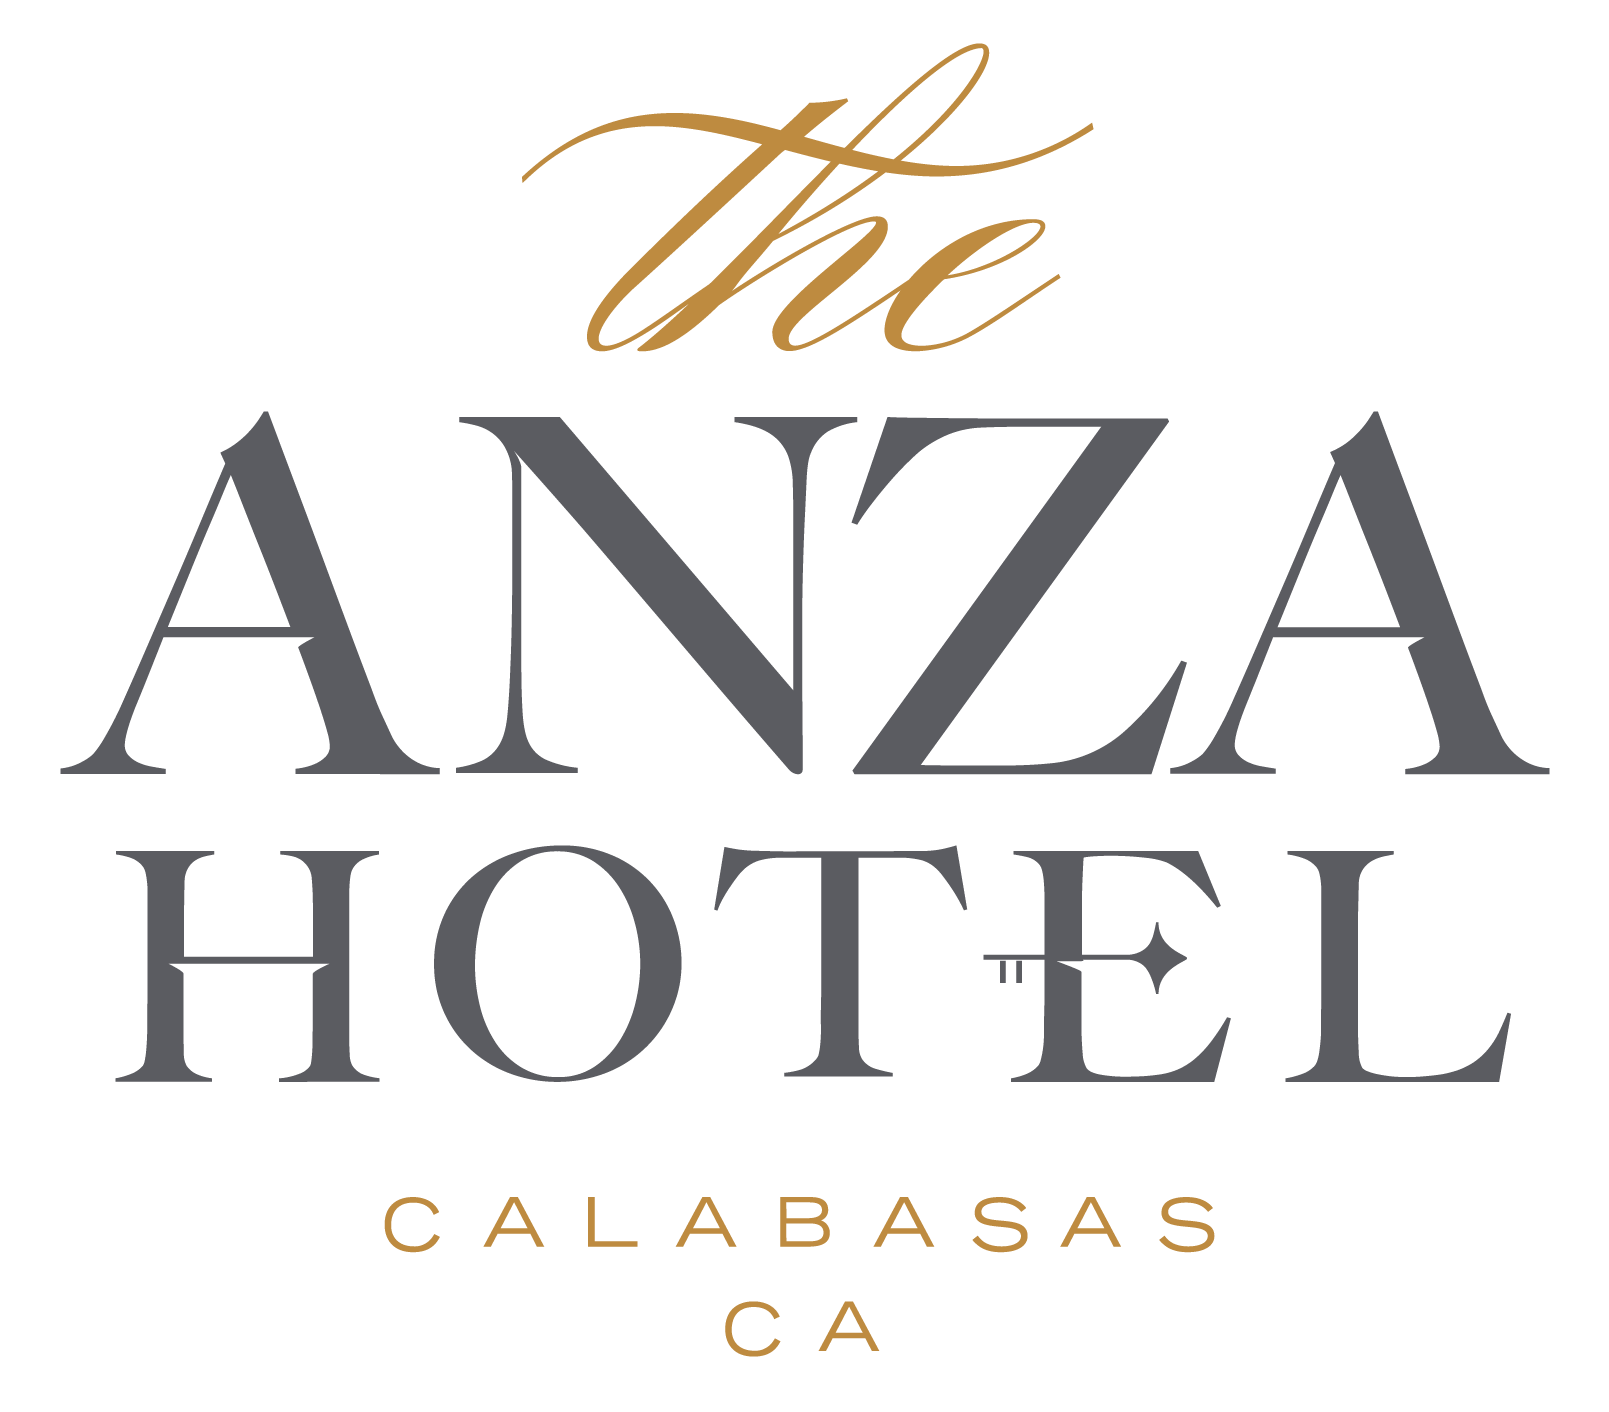 Logo for The Anza, a Calabasas Hotel